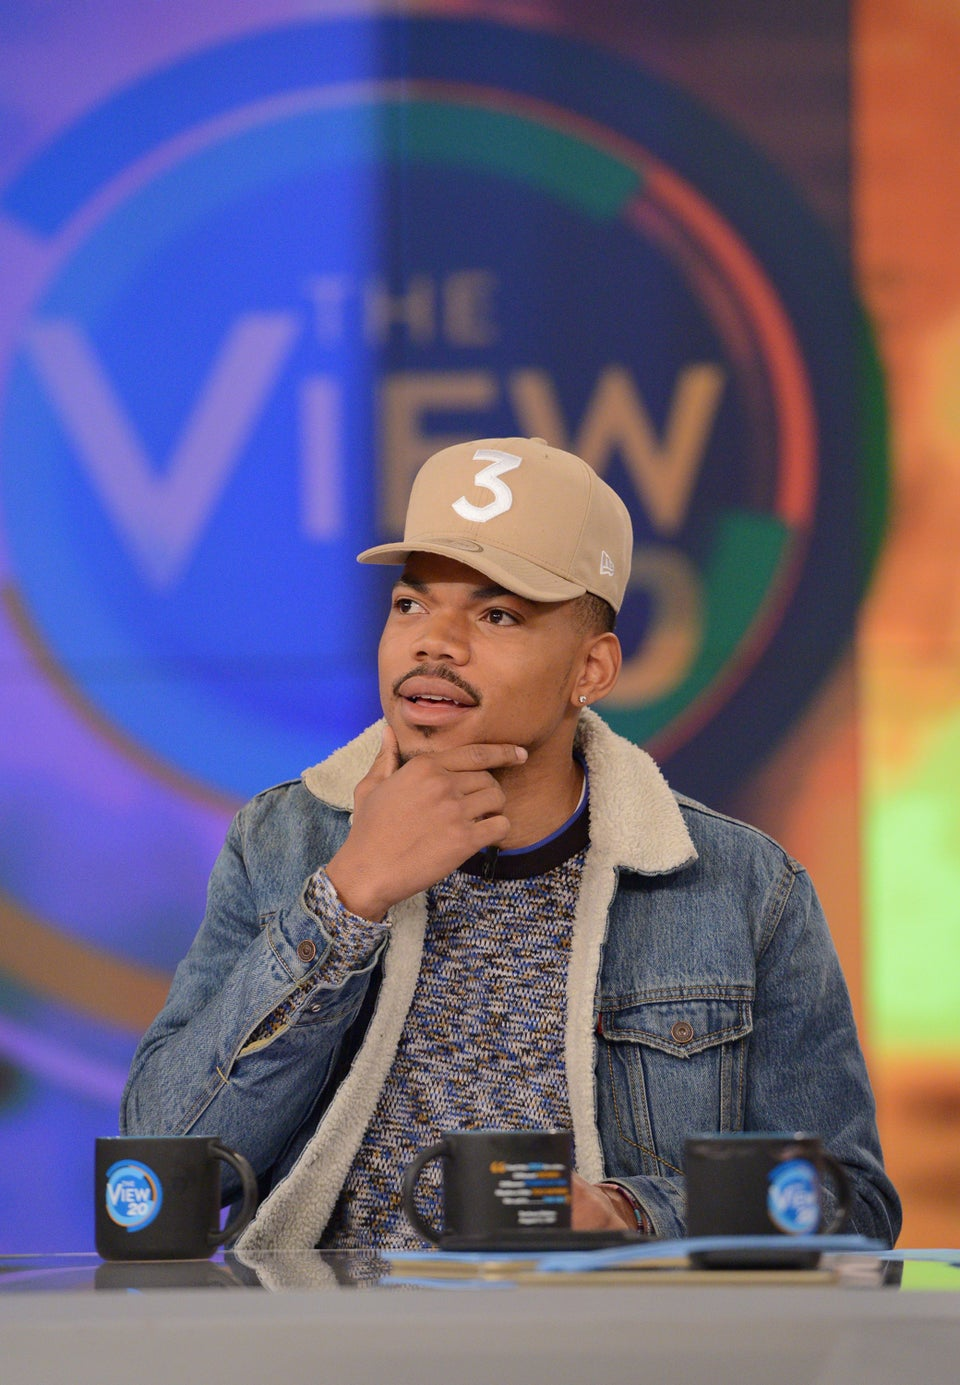 Chance The Rapper Shares How The Black Women In His Family Inspire His Spirit Of Activism On 'The View'